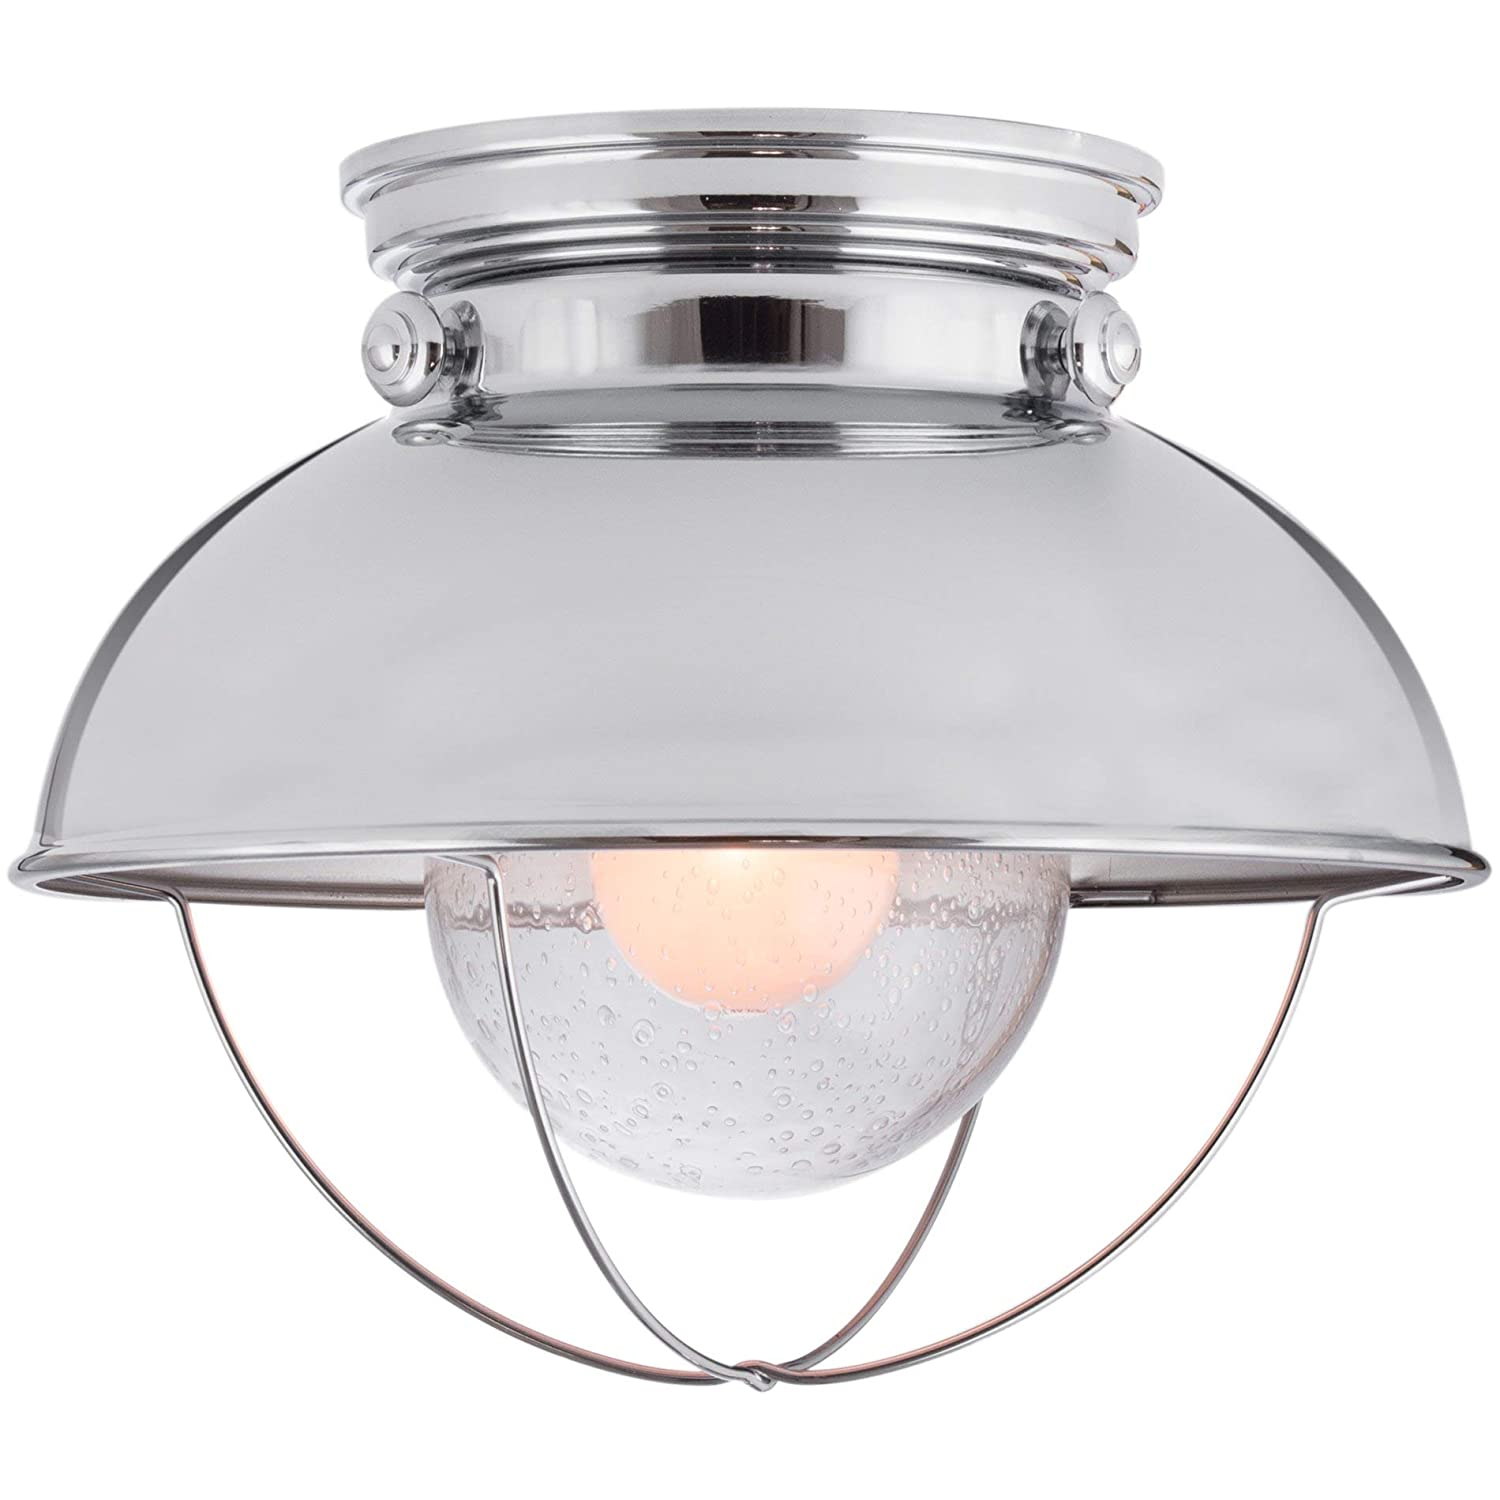 "Kira Home Bayside 11"" Industrial Farmhouse Flush Mount Ceiling Light + Seeded Glass Shade, Chrome Finish"